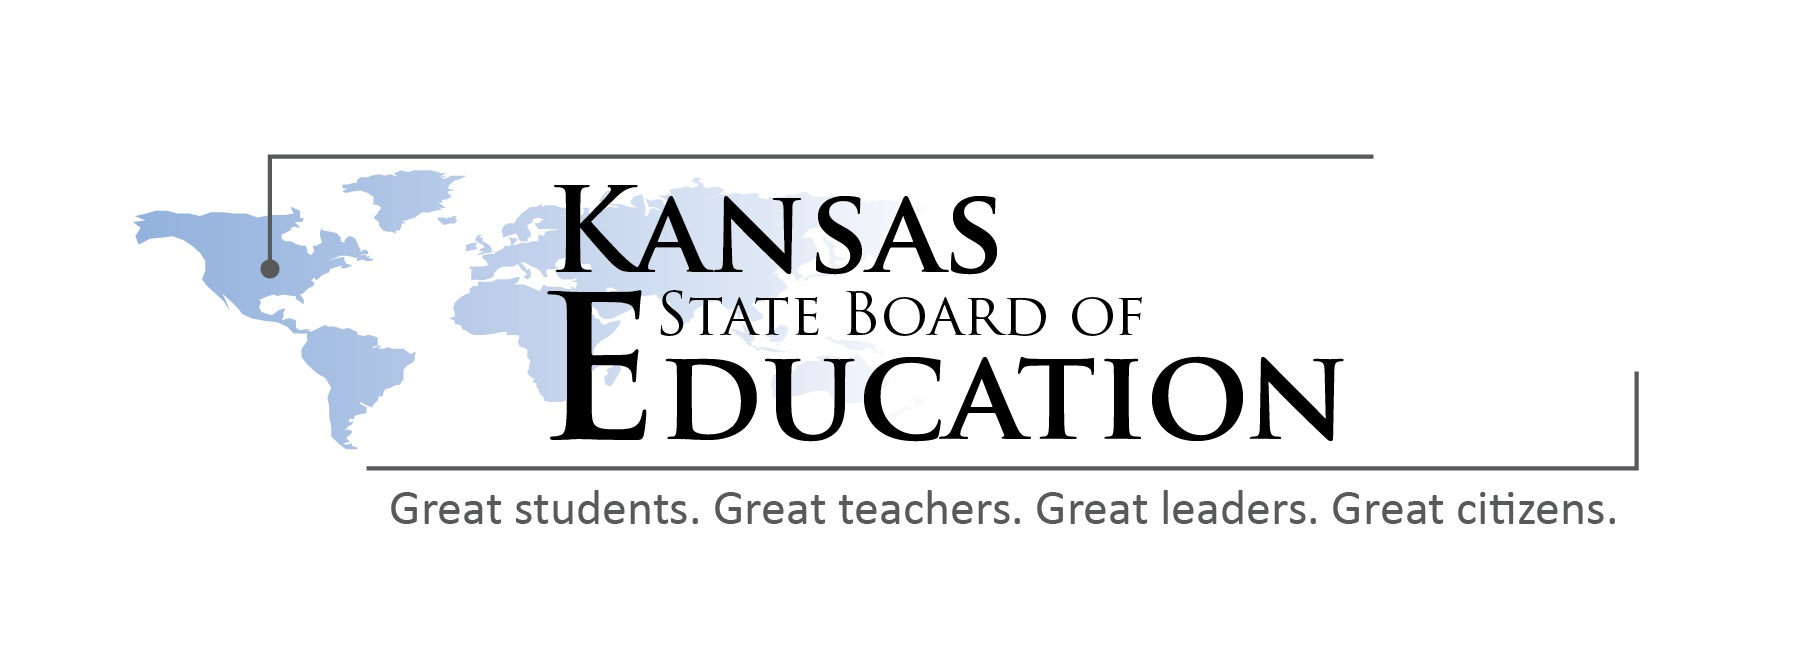 the fsm movement of kansas state board of education The church of the flying spaghetti monster began in 2005, when bobby henderson, a recent physics graduate of oregon state university, sent a letter to the kansas board of education, which was debating the inclusion of intelligent design theories in high school classes on evolution.